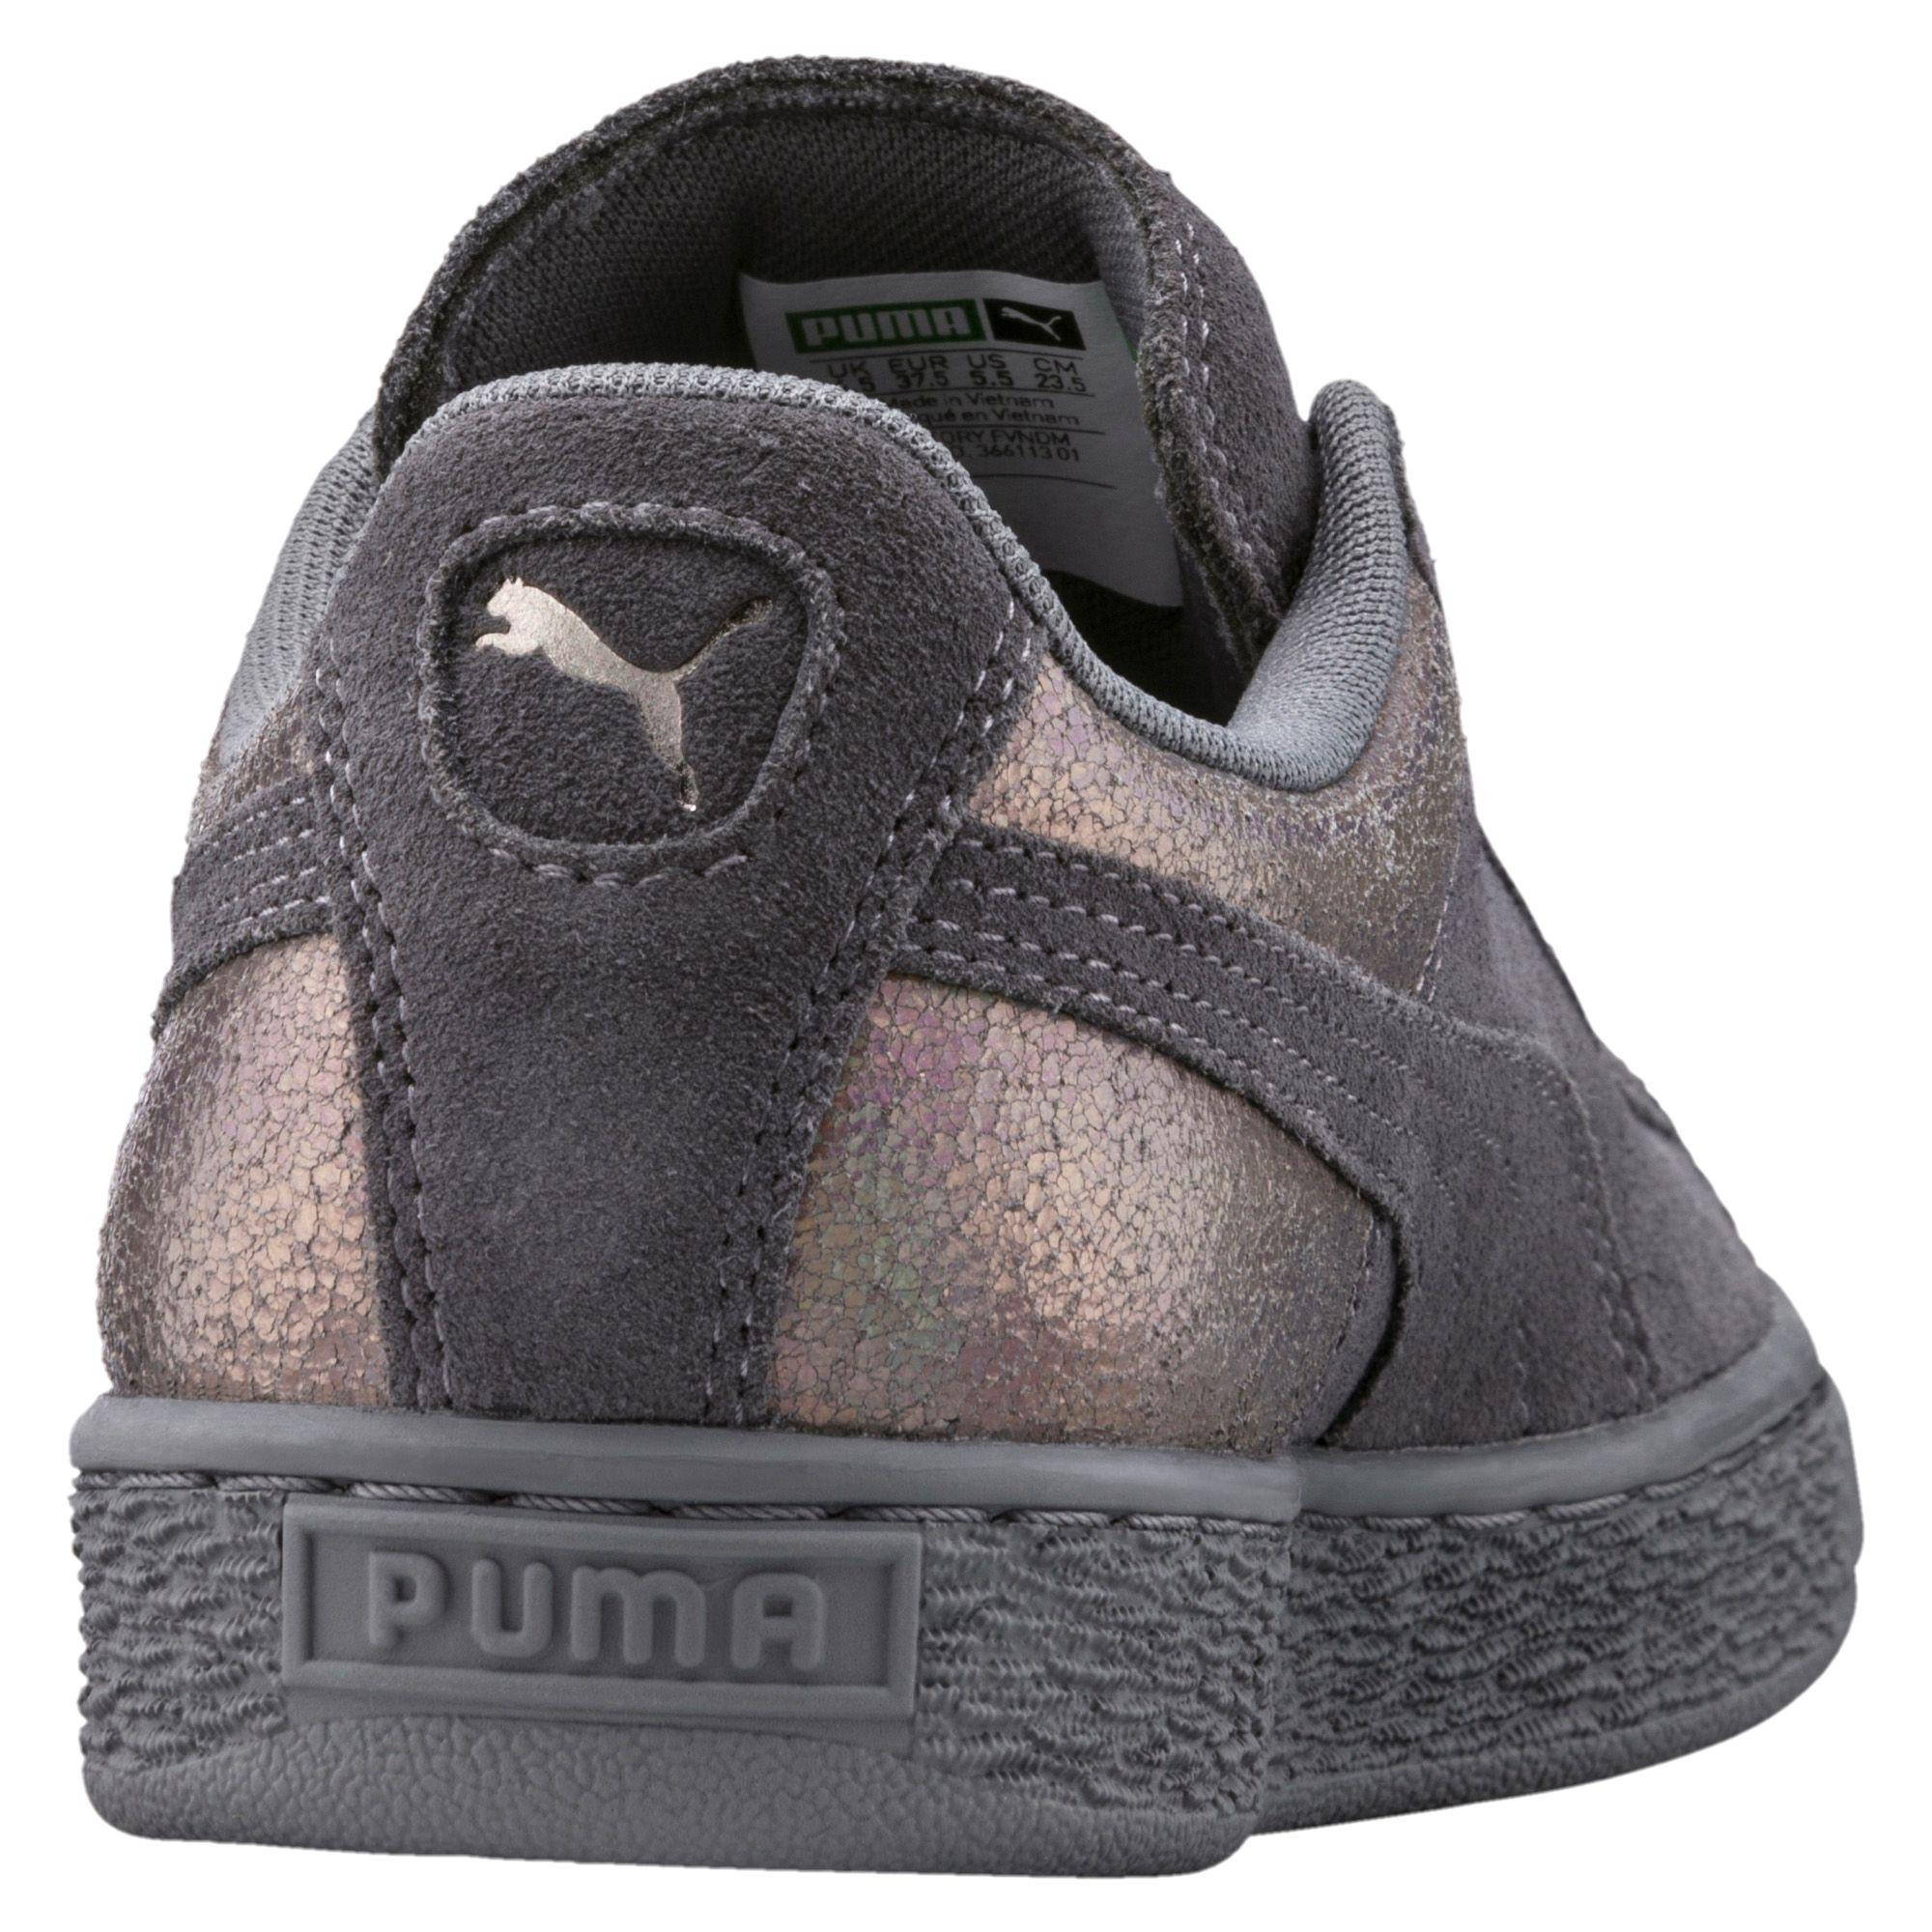 1a687a68c932 Lyst - PUMA Suede Lunar Lux Women s Sneakers in Gray